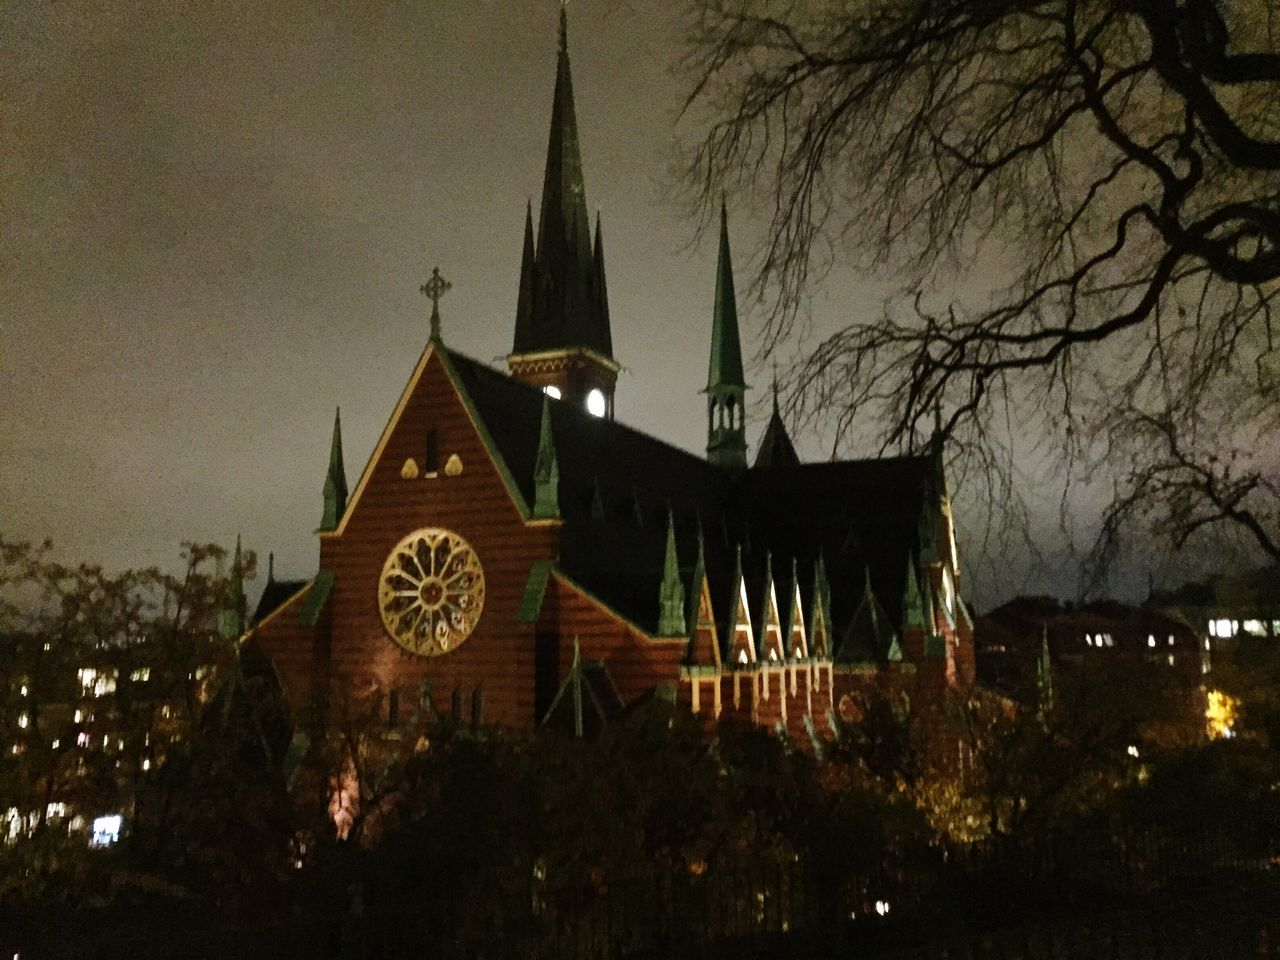 Tree Architecture Church Churches Place Of Worship Religion Building Exterior Outdoors Night Bare Tree Sweden Winter Colour Of Life Beautiful Colors Travel Lights Gothenburg Cold Sunset Spooky Halloween